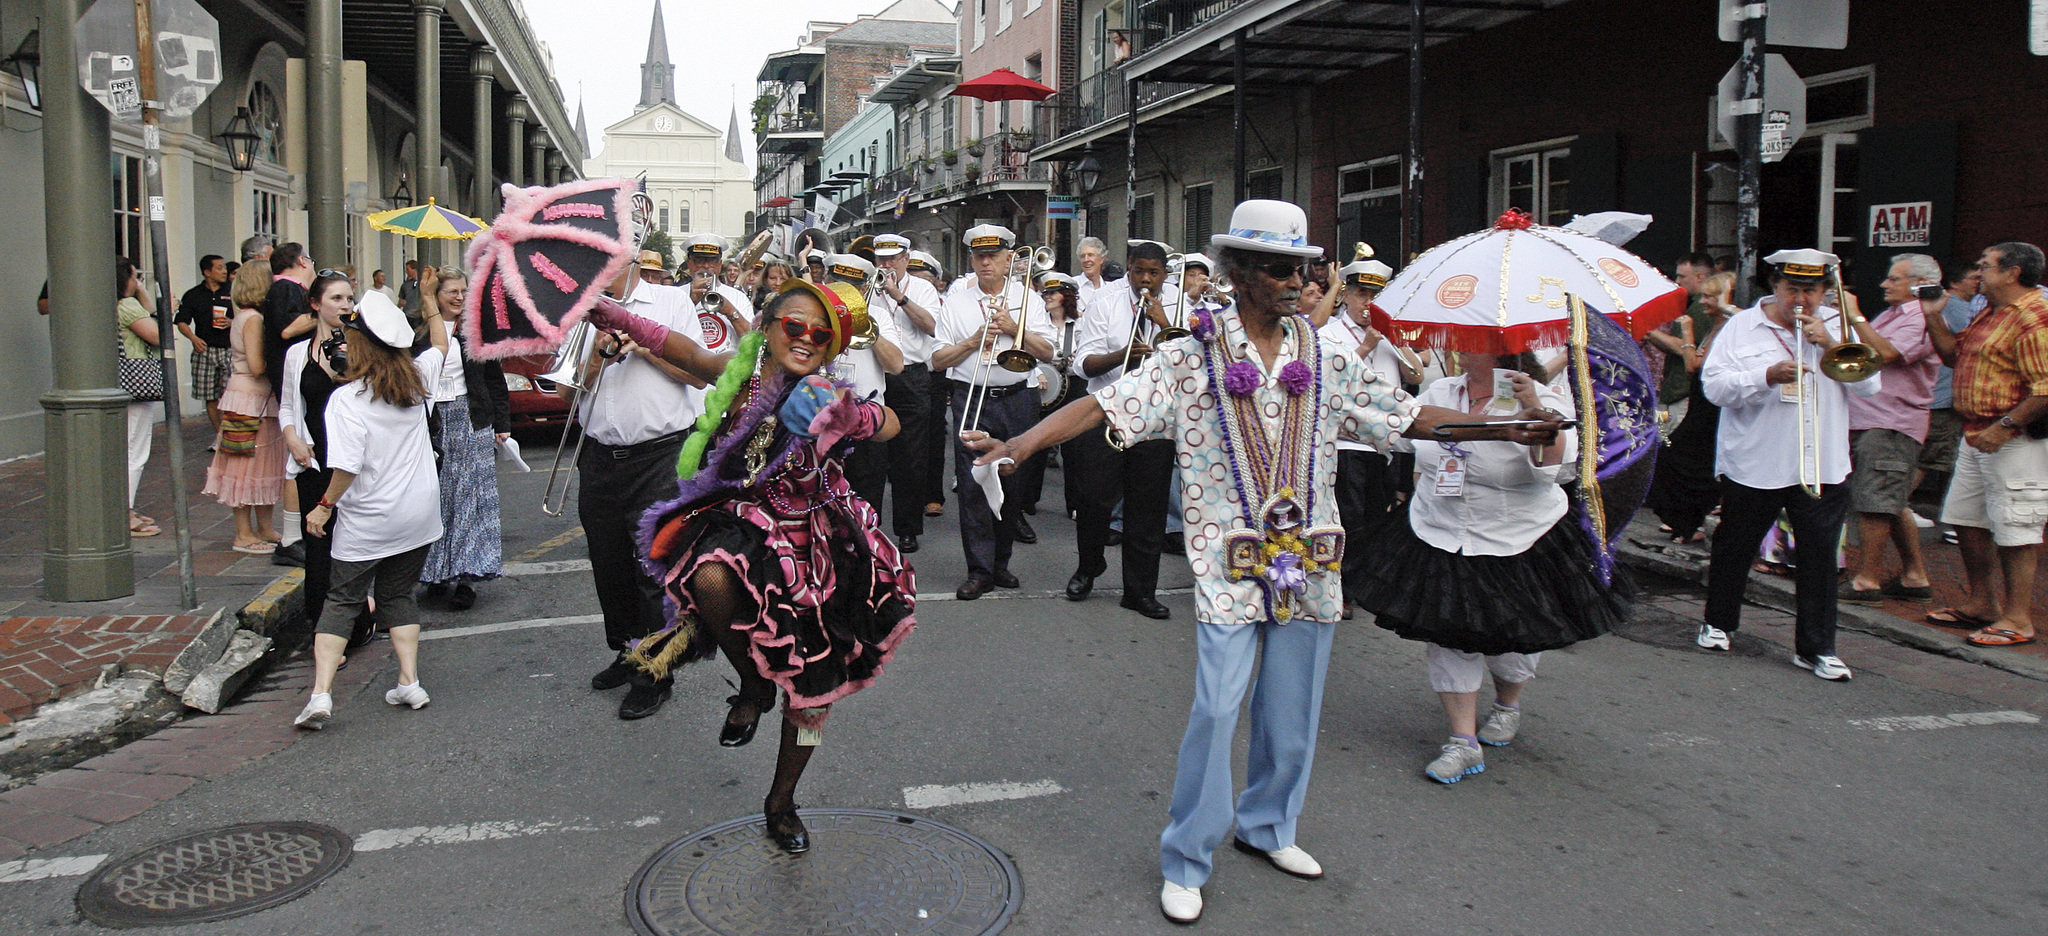 french-quarter-paradejpg-893b1c43dd7d58d2